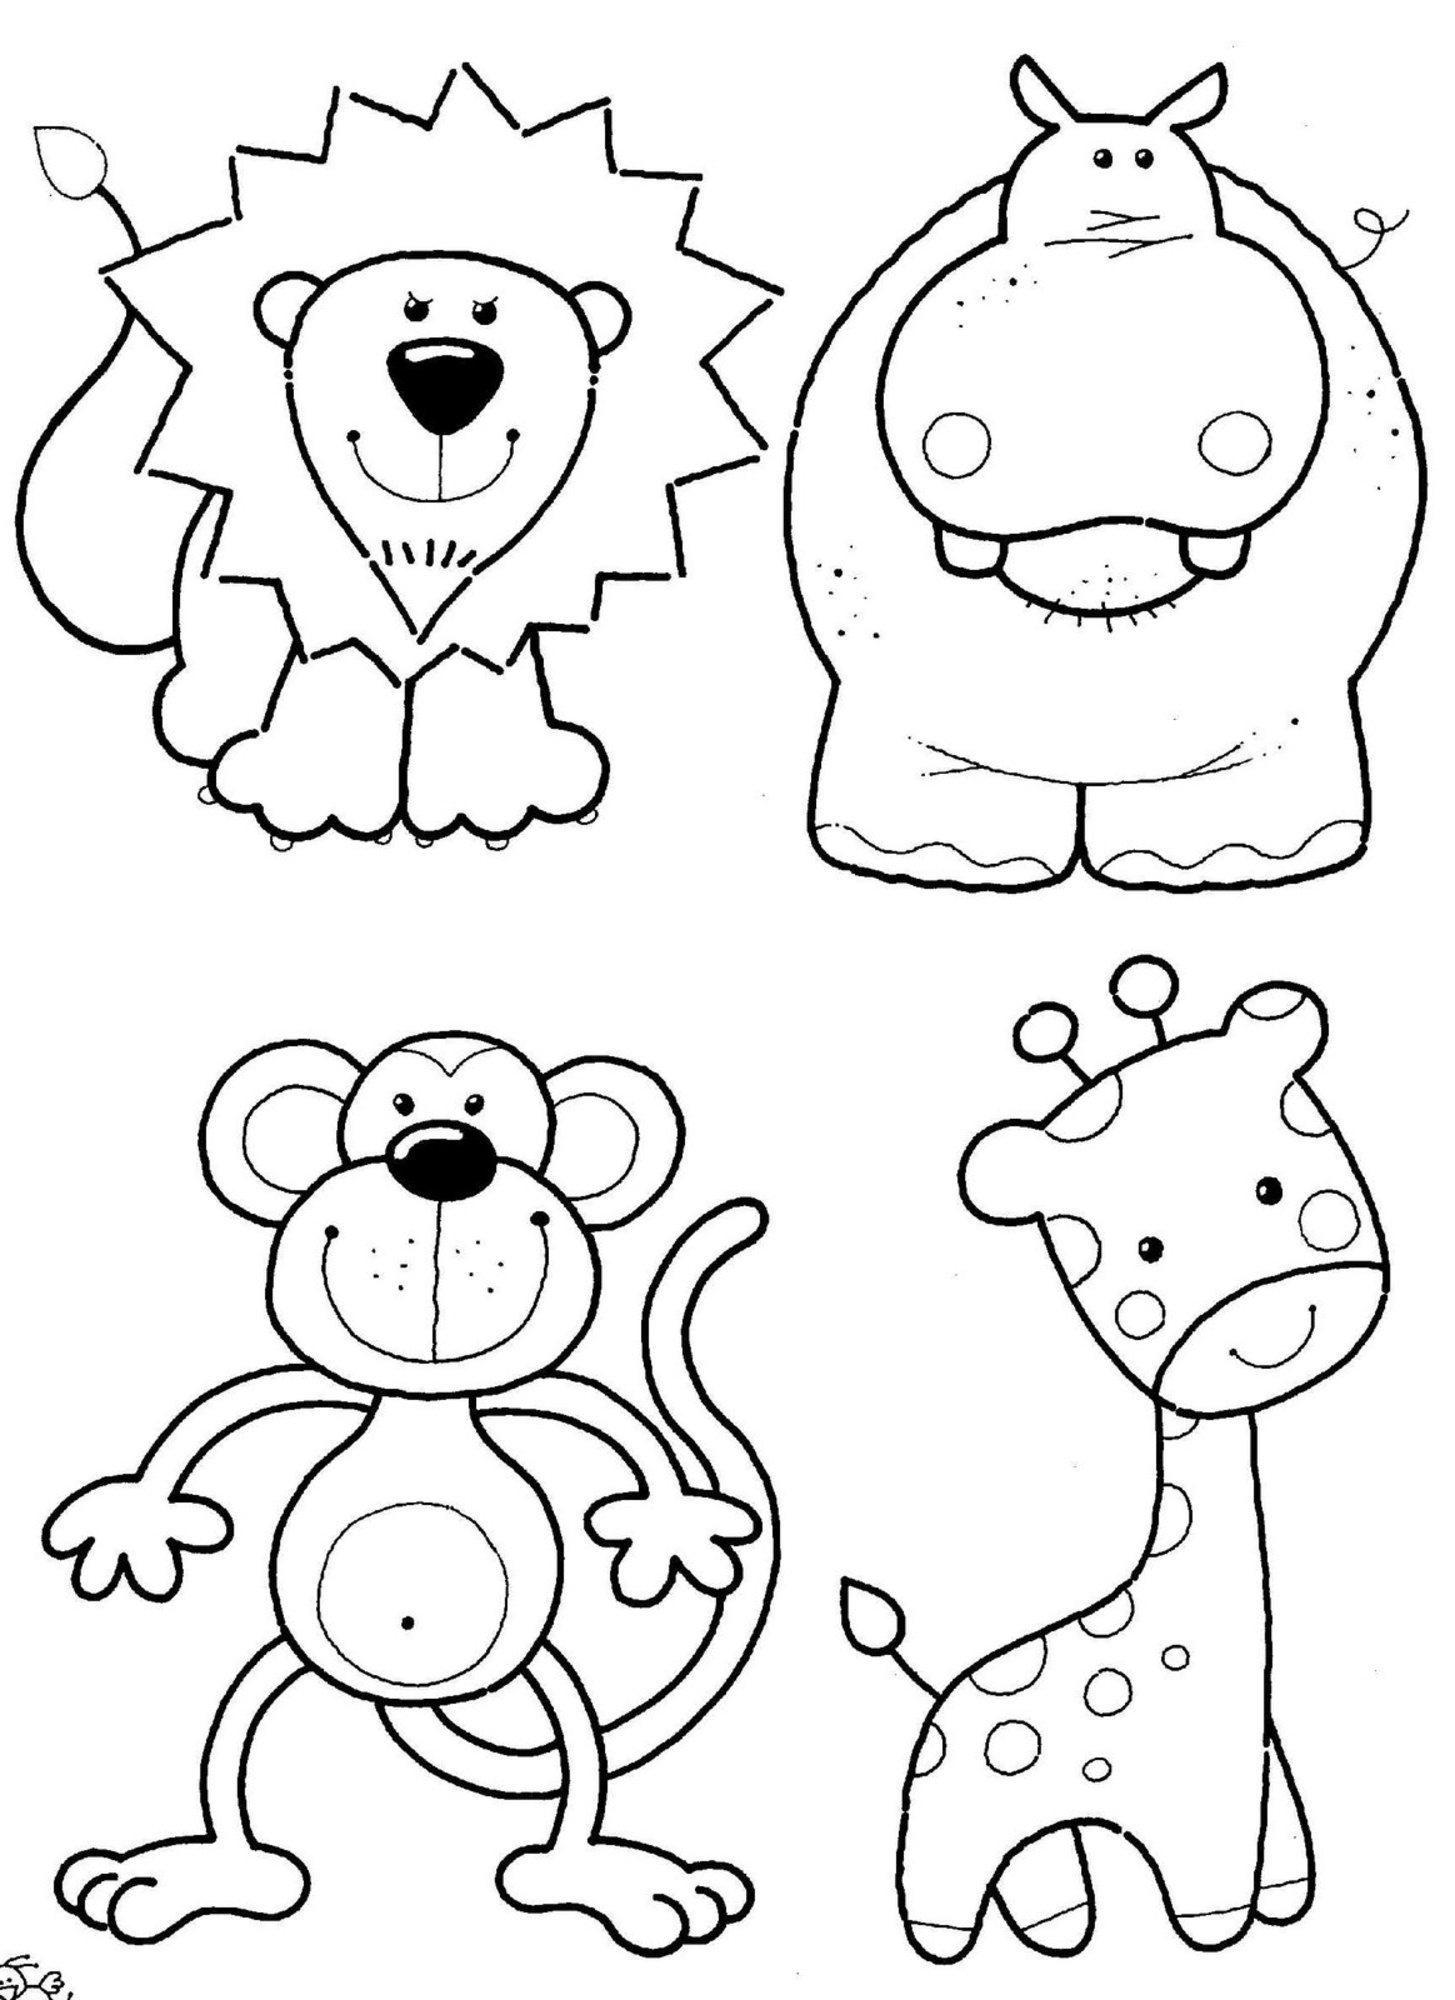 Put Me In The Zoo Coloring Page - Coloring Home